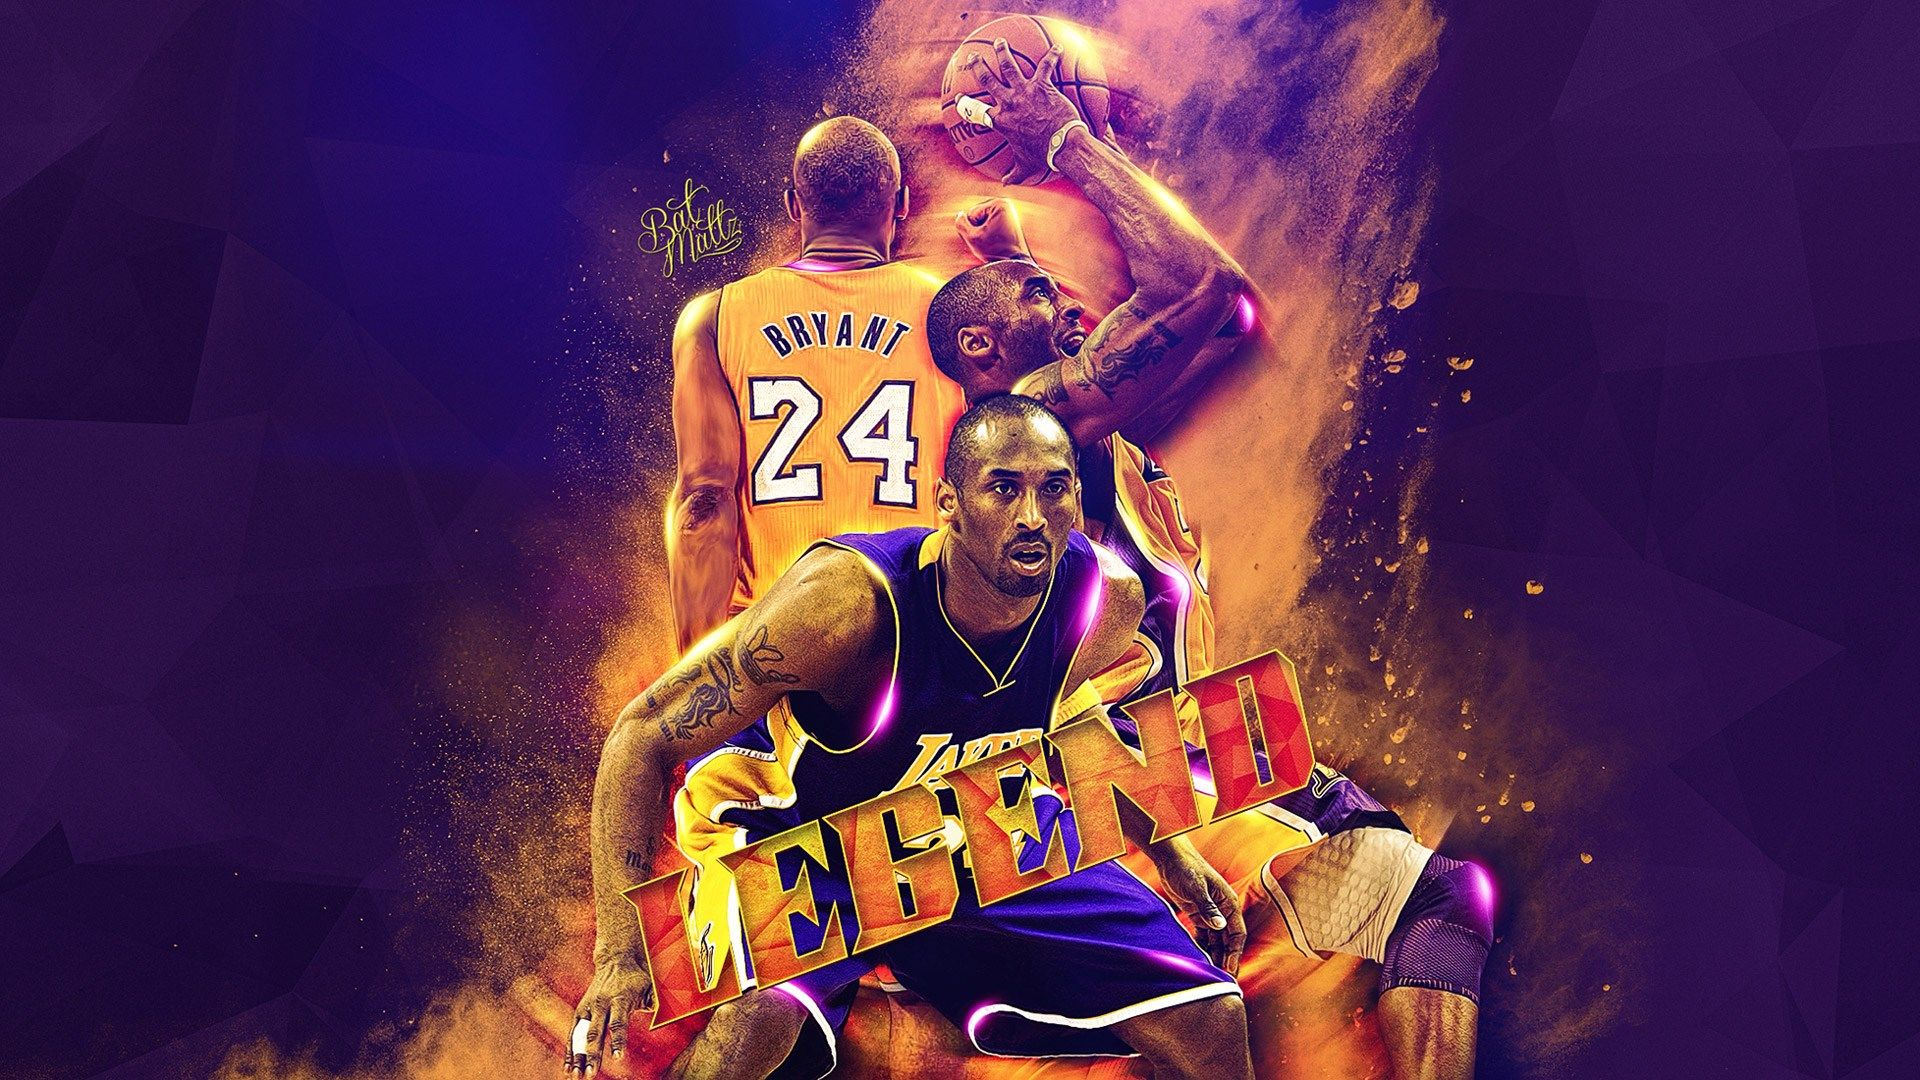 1920x1080 High Quality kobe bryant JPG 534 kB Kobe